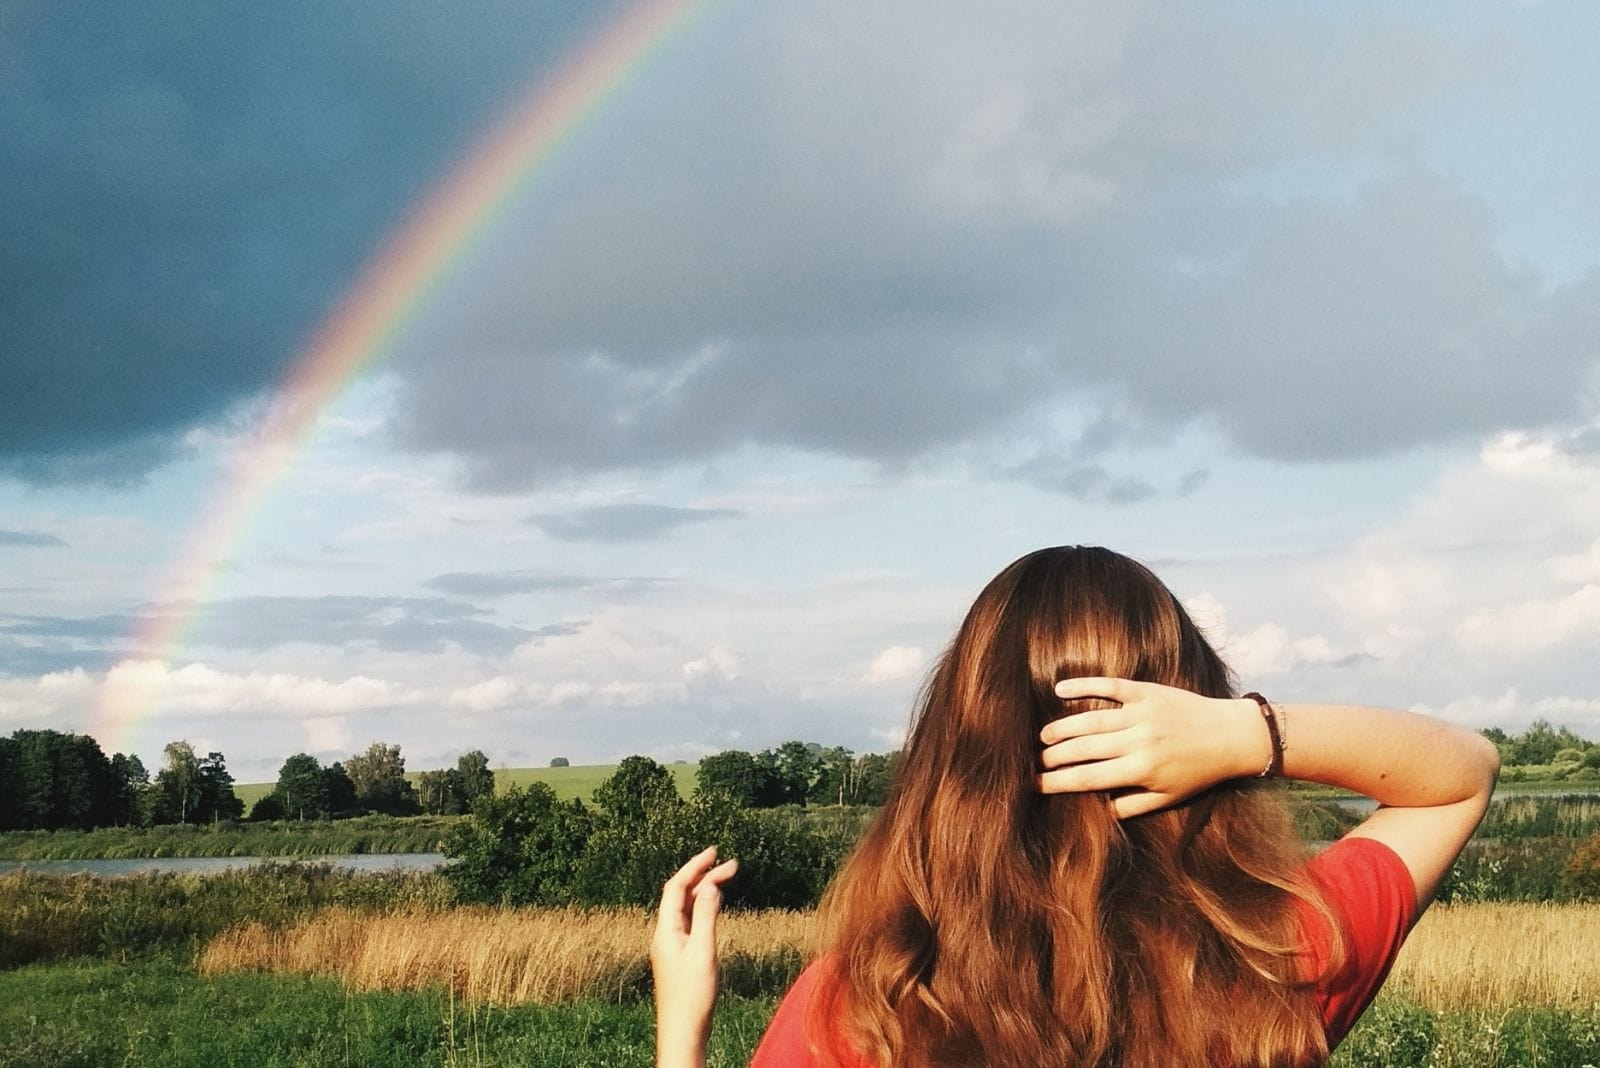 woman looking at the rainbow over the meadows while holding her hair/head